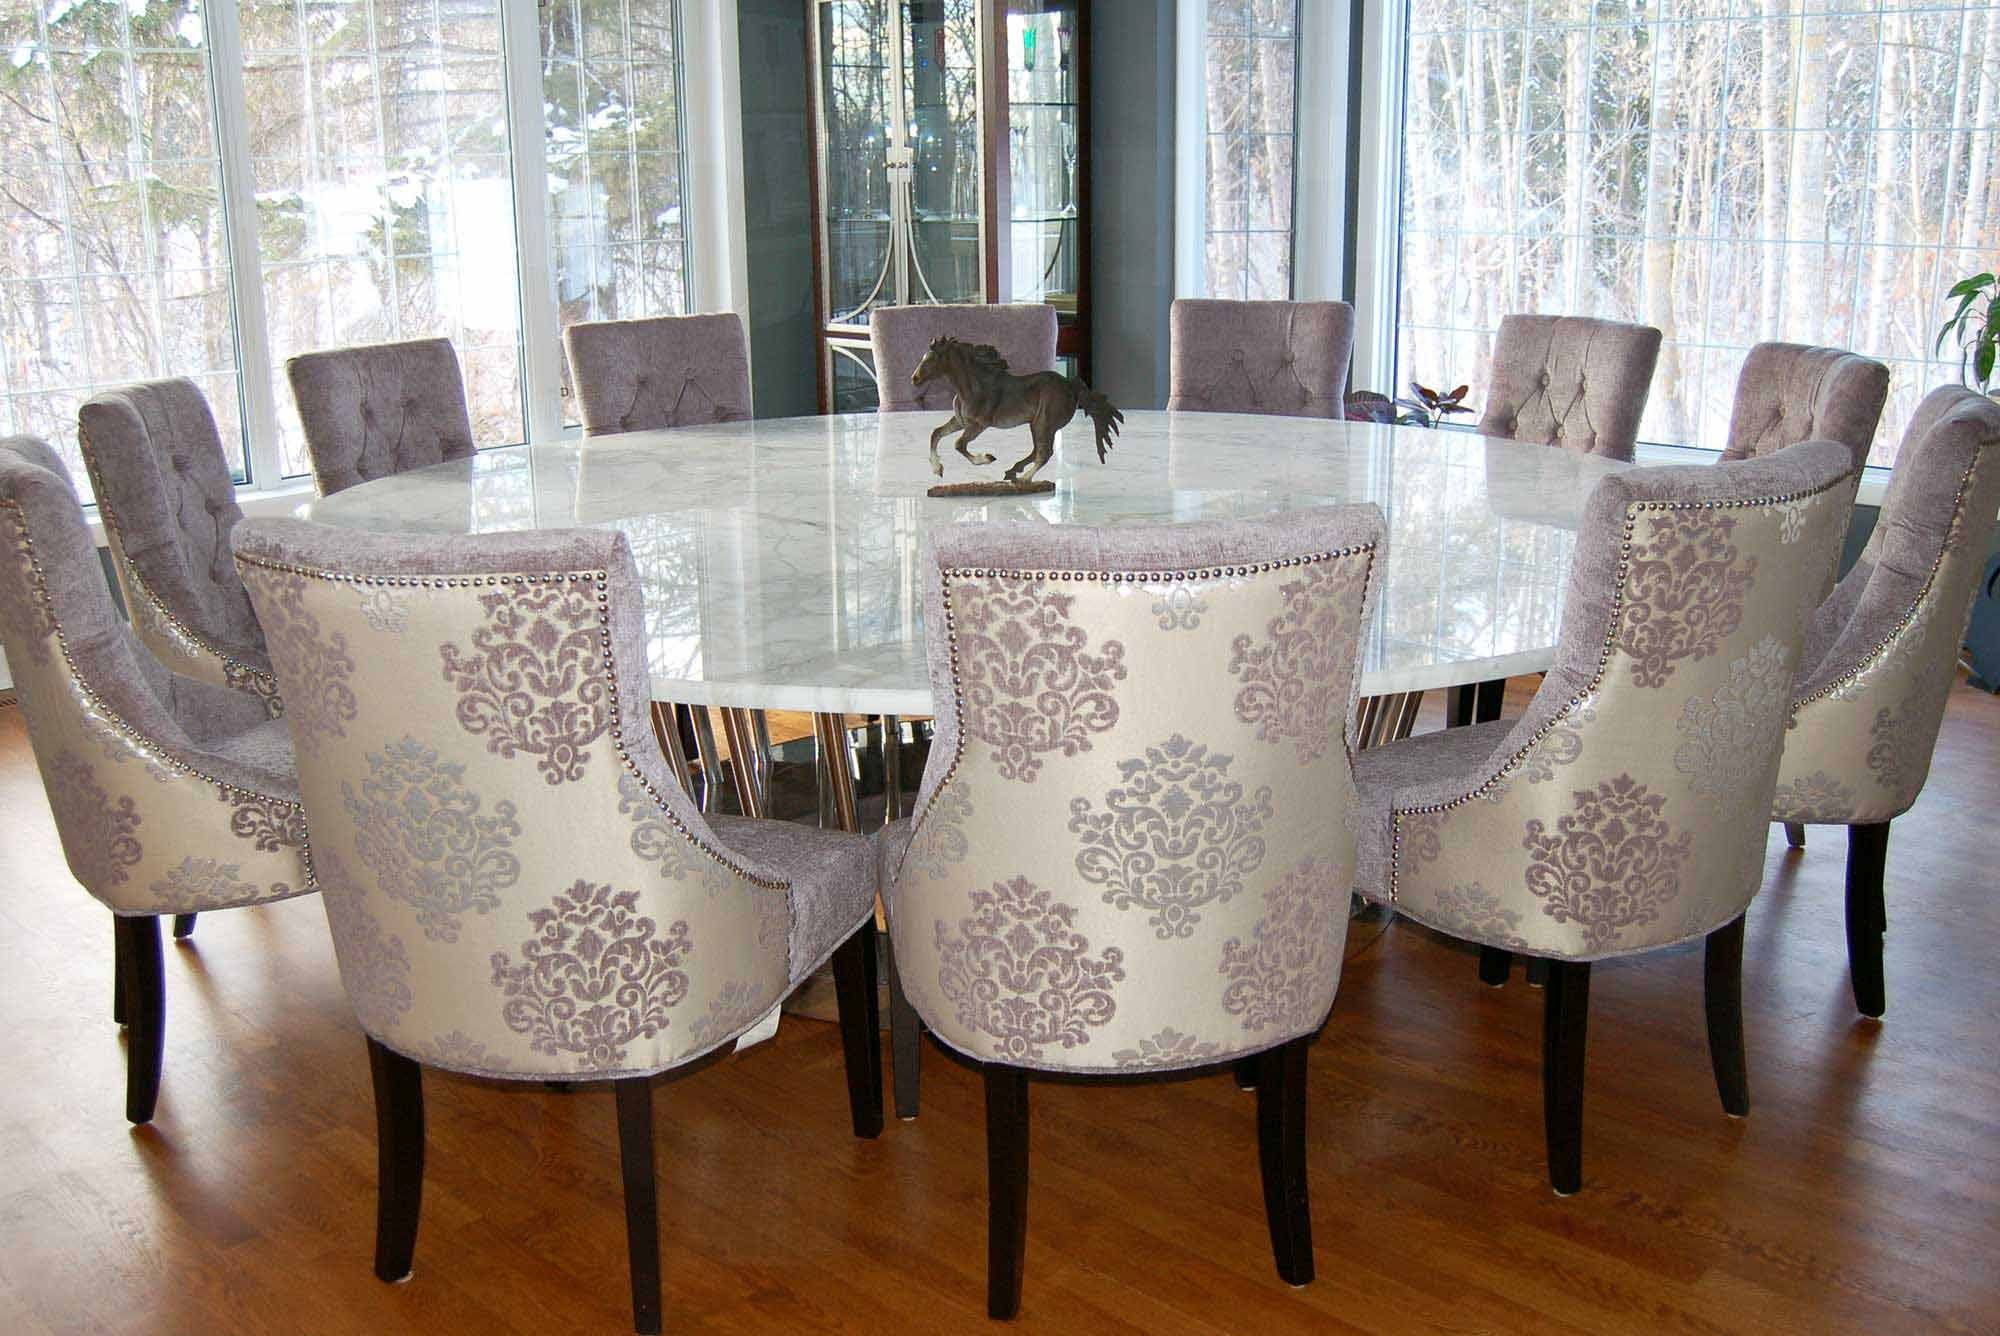 Large Round Kitchen Table Sets  Httpmanageditservicesatlanta Glamorous Large Dining Room Chair Covers Design Ideas